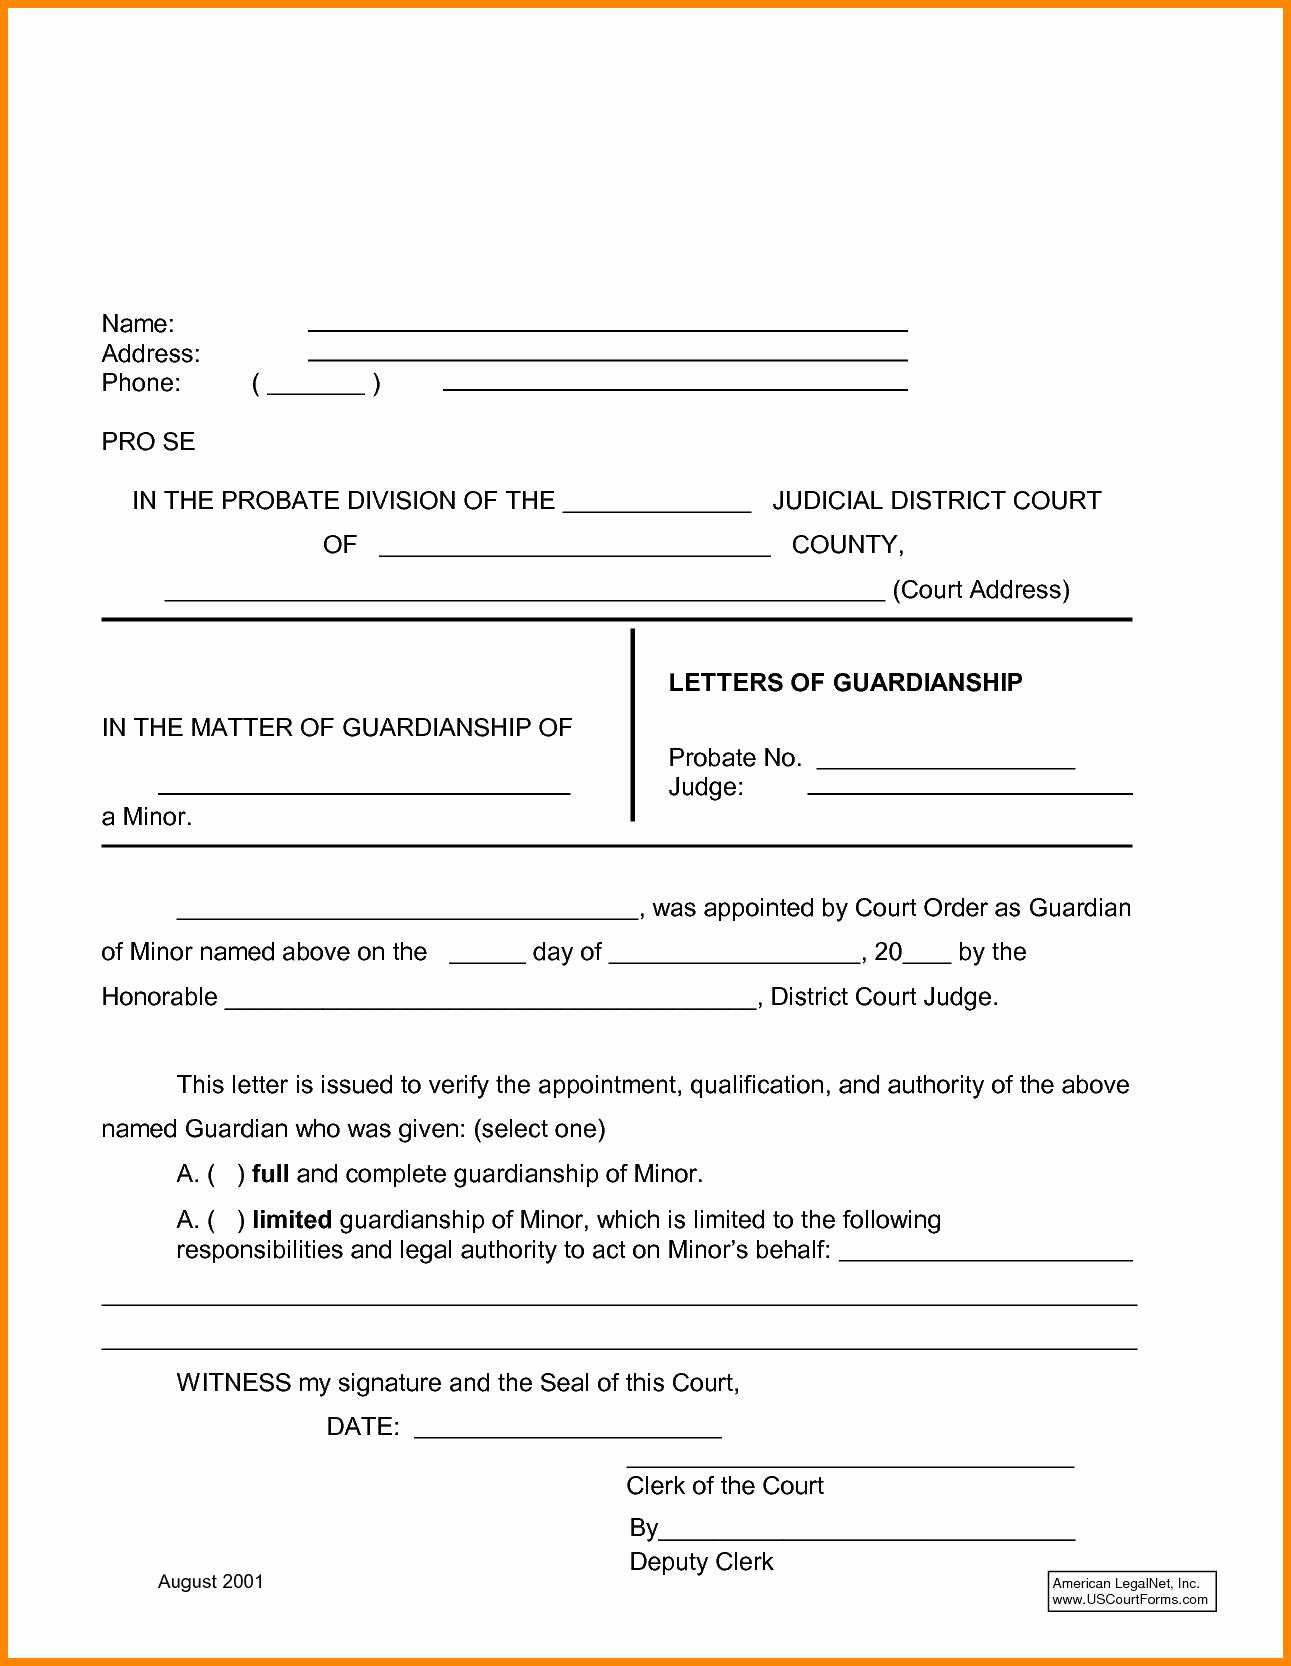 Temporary Guardianship Letter Template - Temporary Guardianship Agreement form Temporary Custody Letter